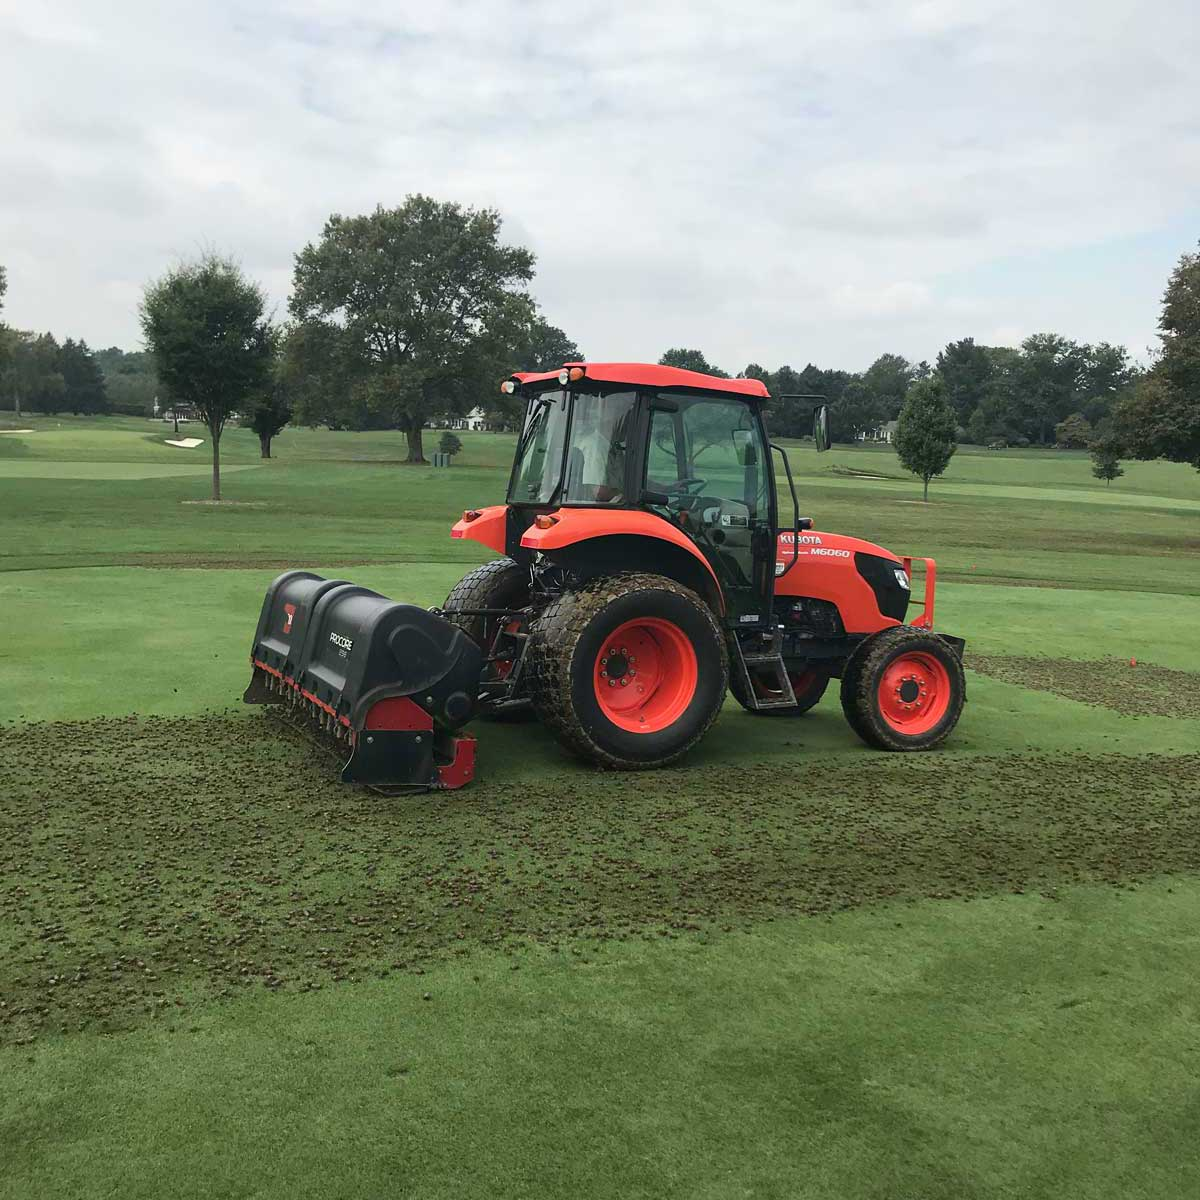 best golf course aerification services company in pennsylvania